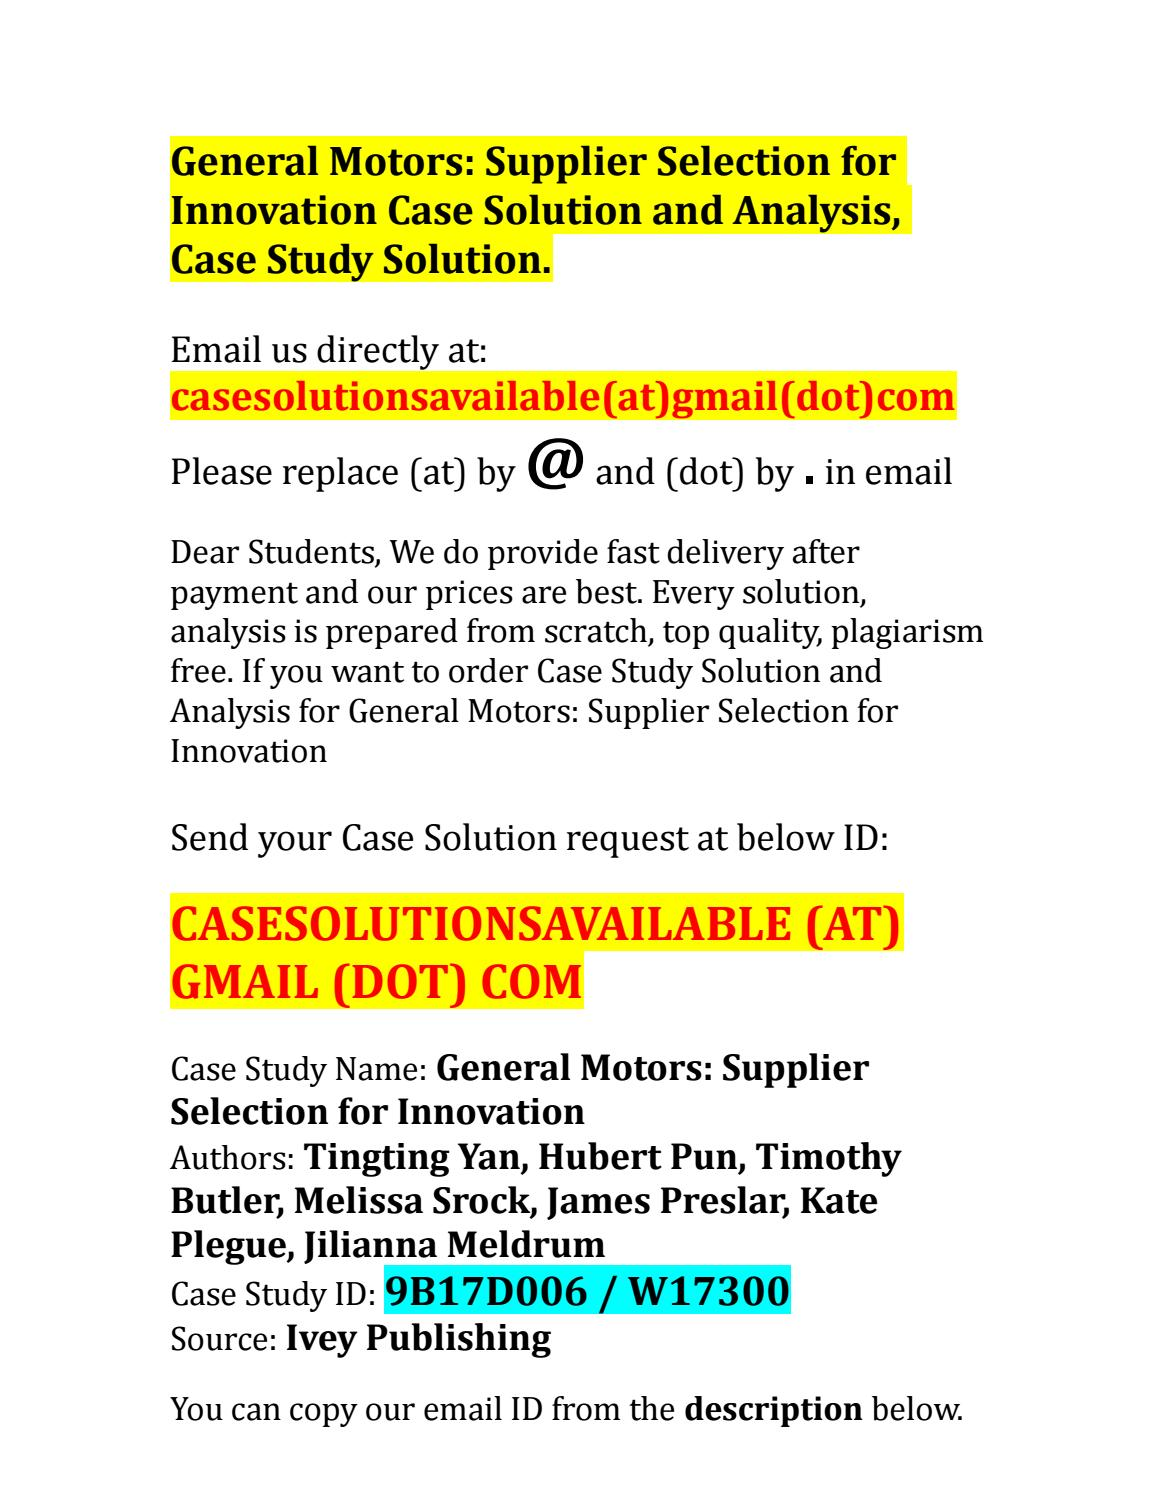 Case Solution for General Motors Supplier Selection for